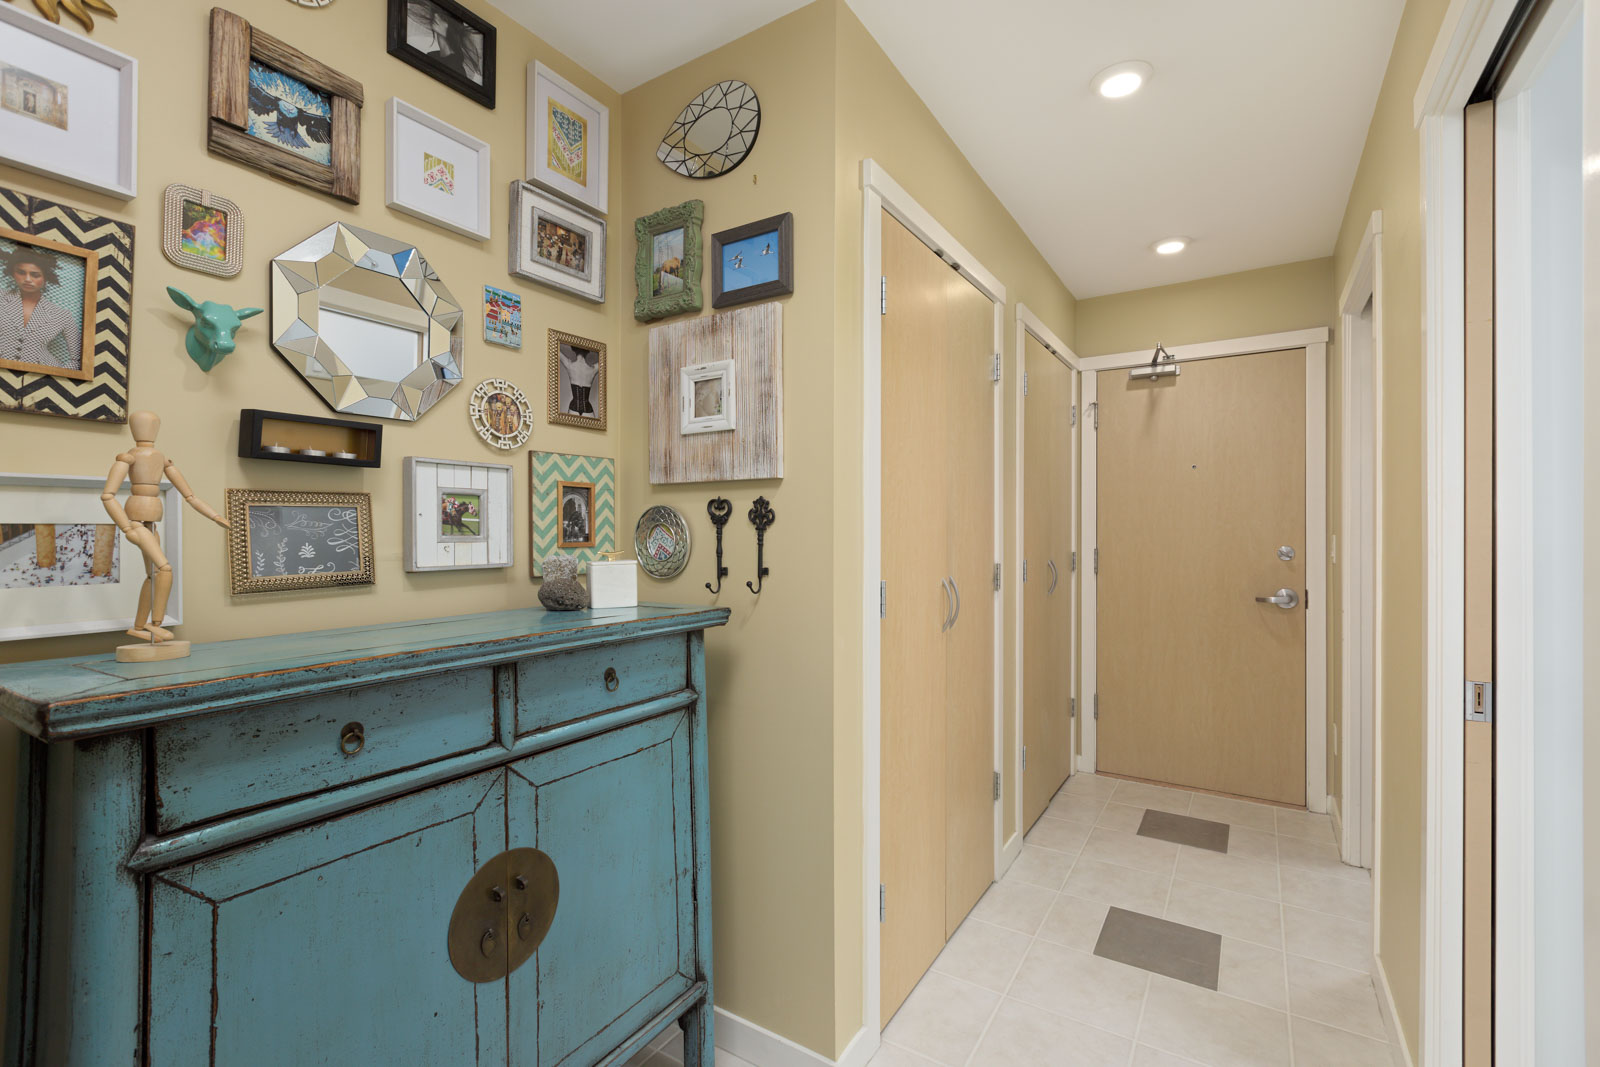 furnished hallway in upscale Yaletown Vancouver condo with nautical dresser